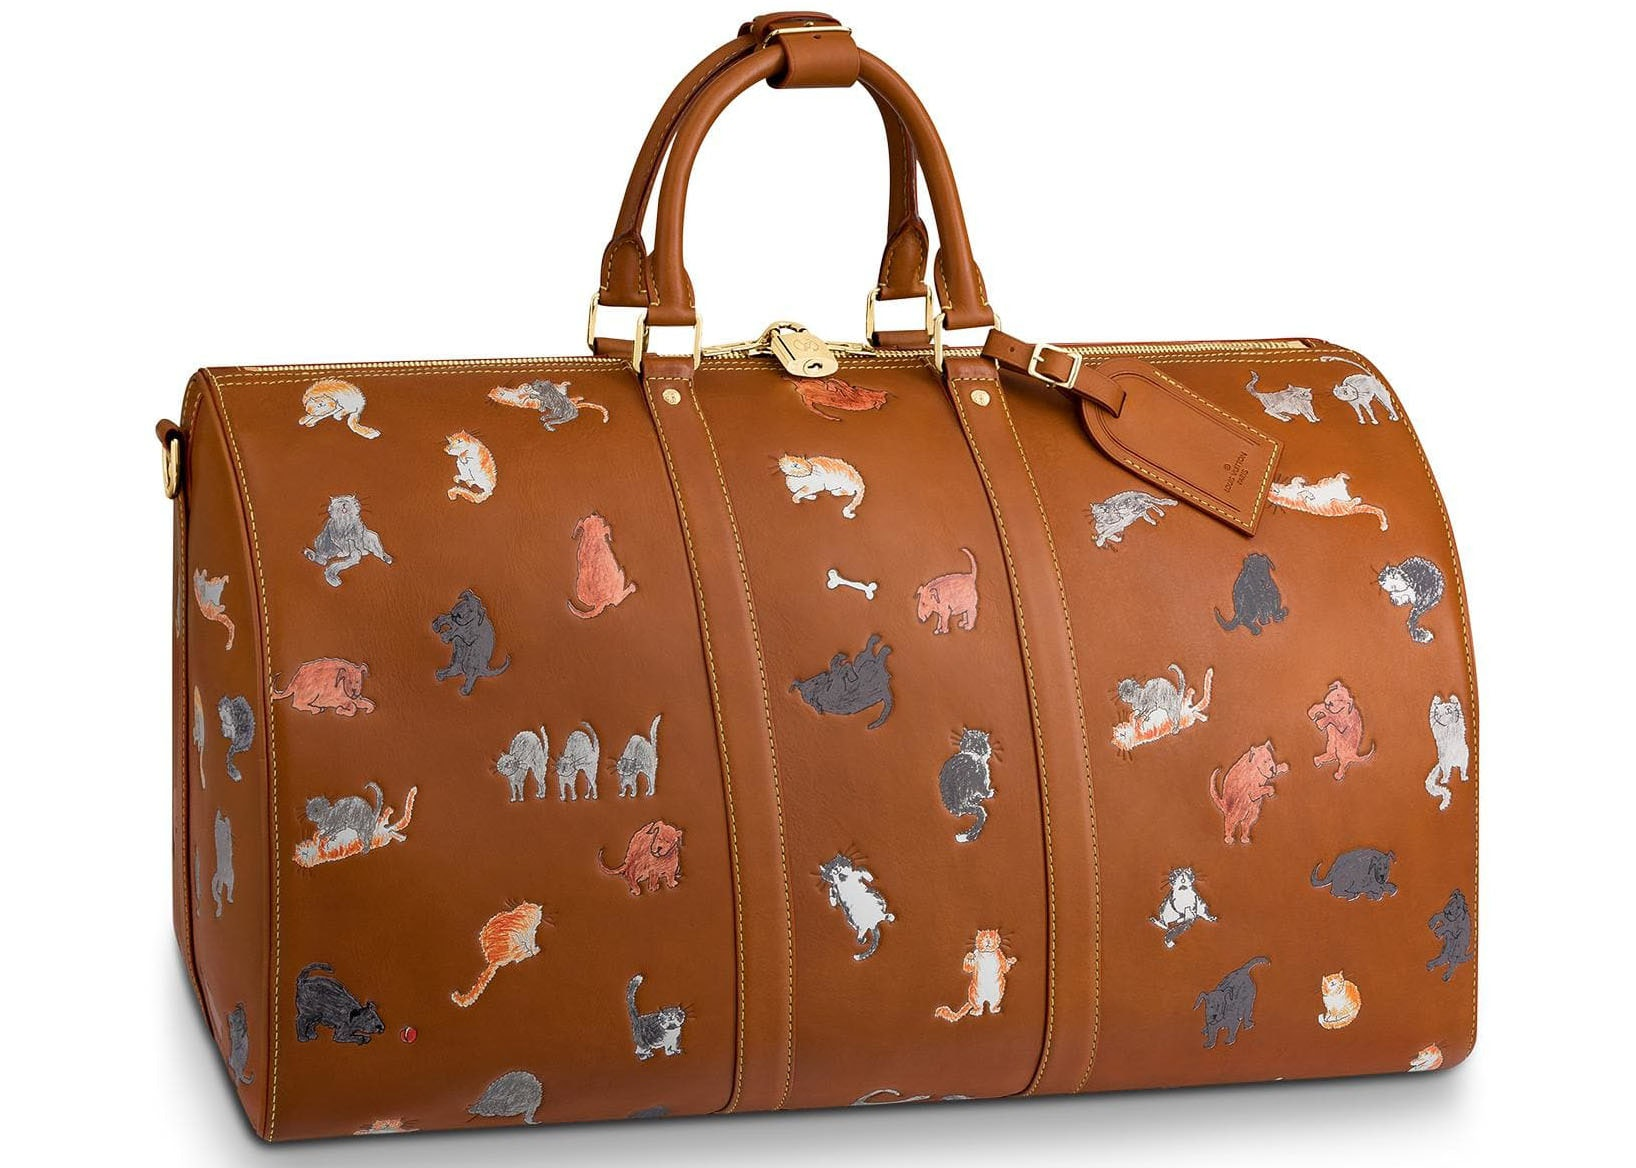 Louis Vuitton Keepall Bandouliere Catogram 55 Tan